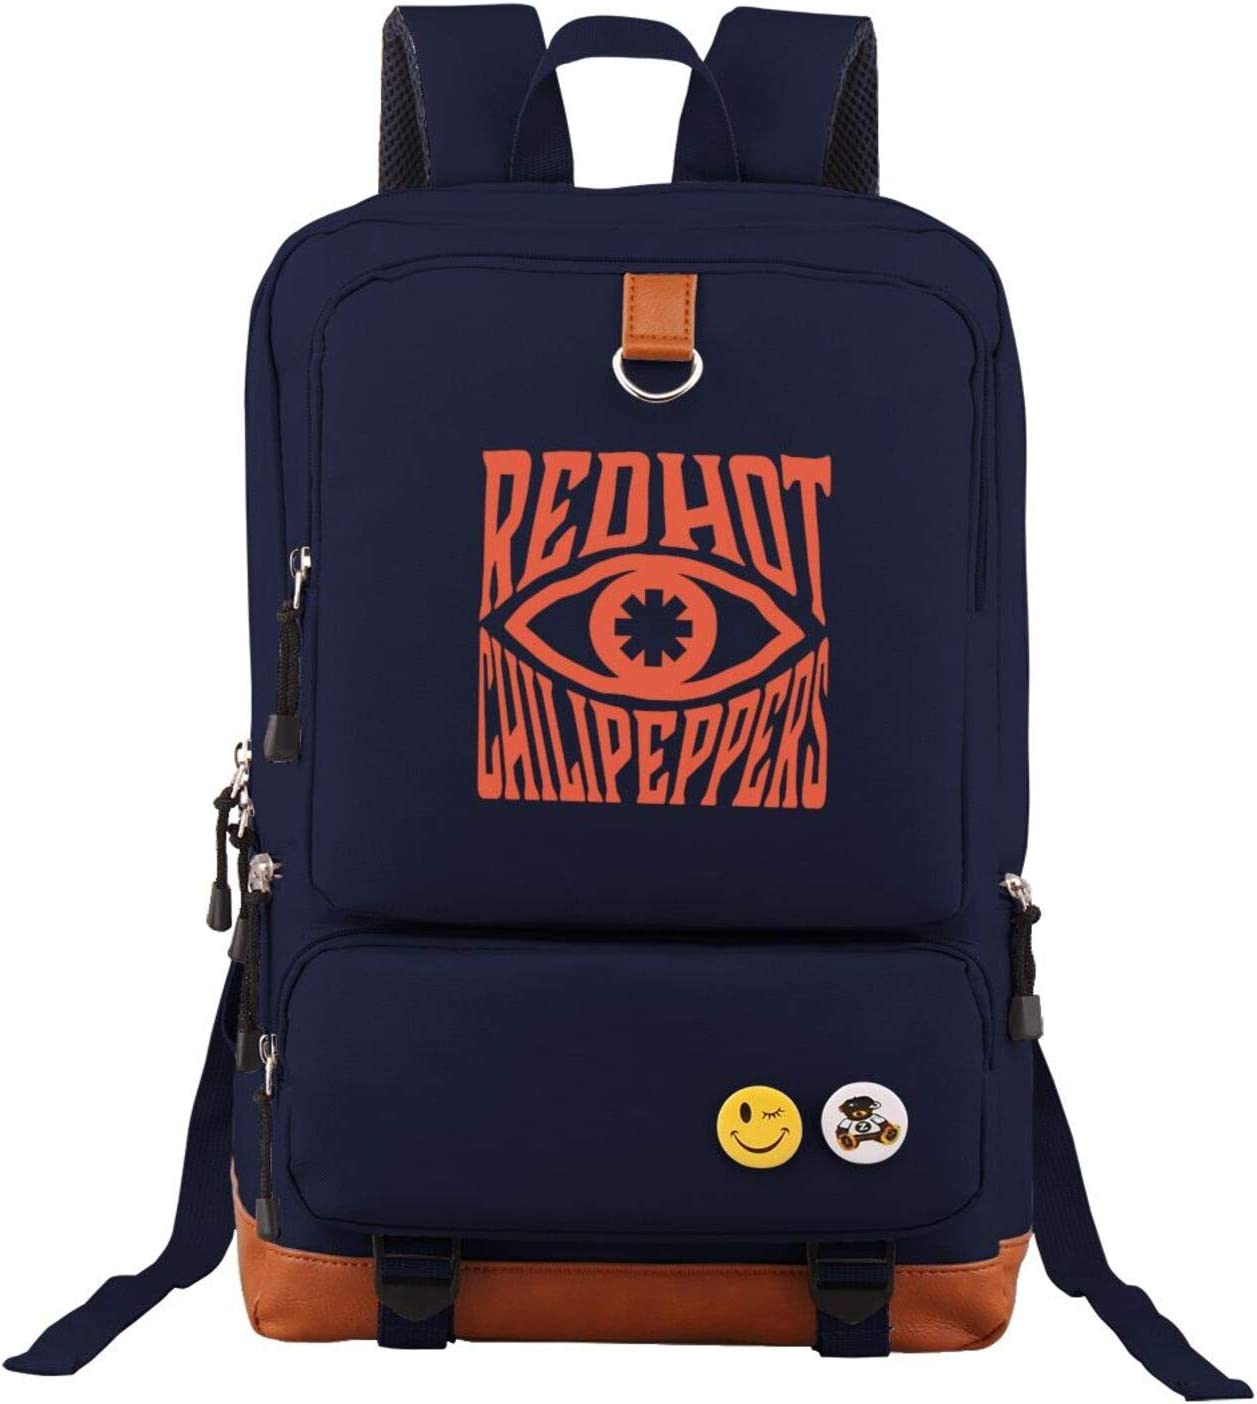 Navy Unisex Red Hot Chili Peppers Backpack Vintage Laptop Backpack Anti-Theft Water Resistant Bag Casual Travel Backpack